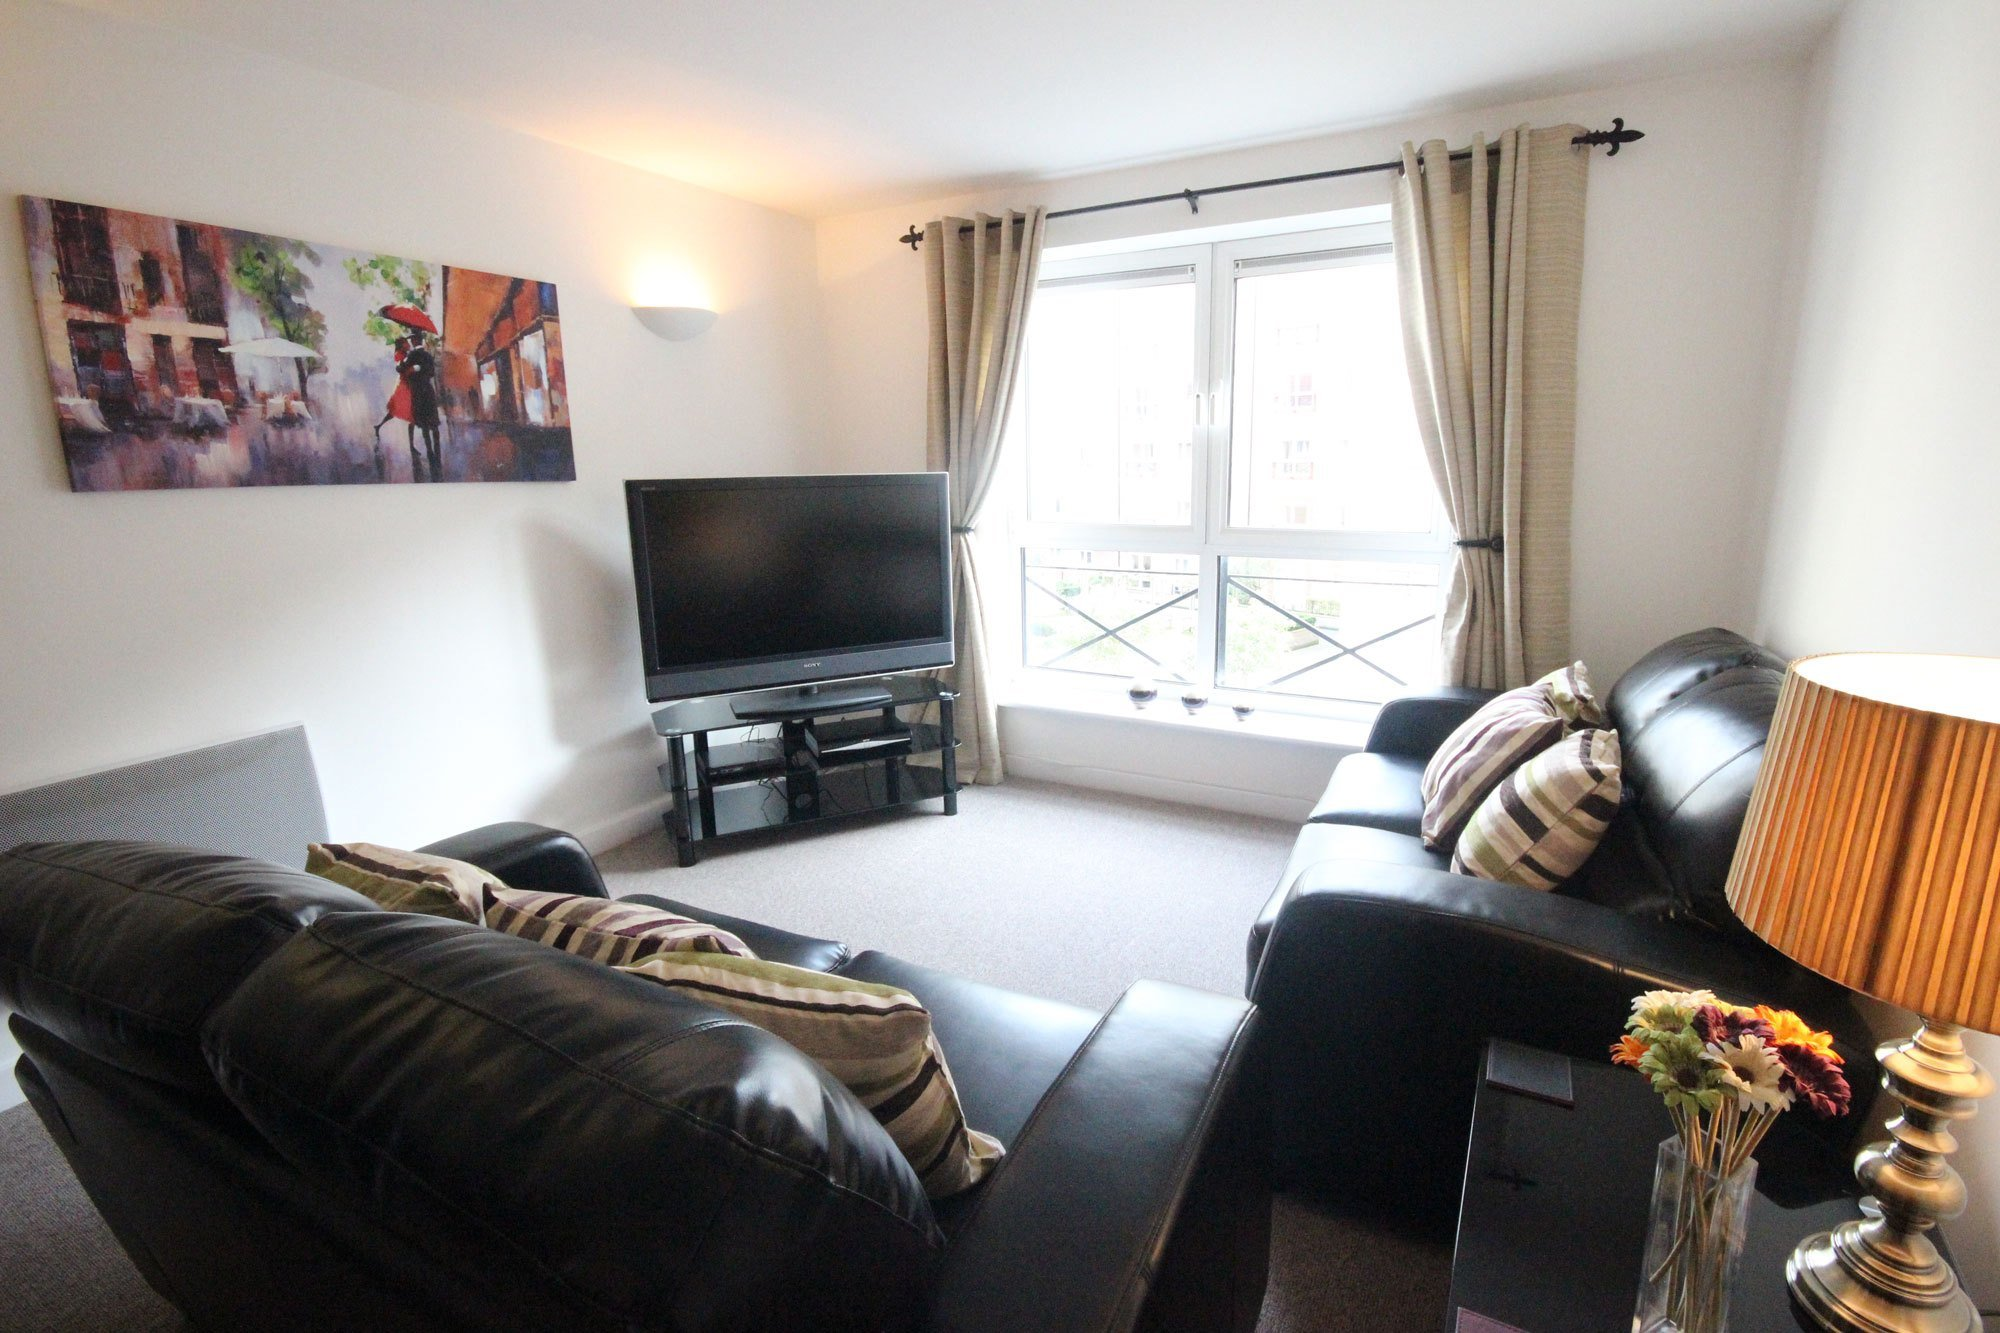 Best Centro 1 Bedroom Executive Apartment In Northampton With Pictures Original 1024 x 768